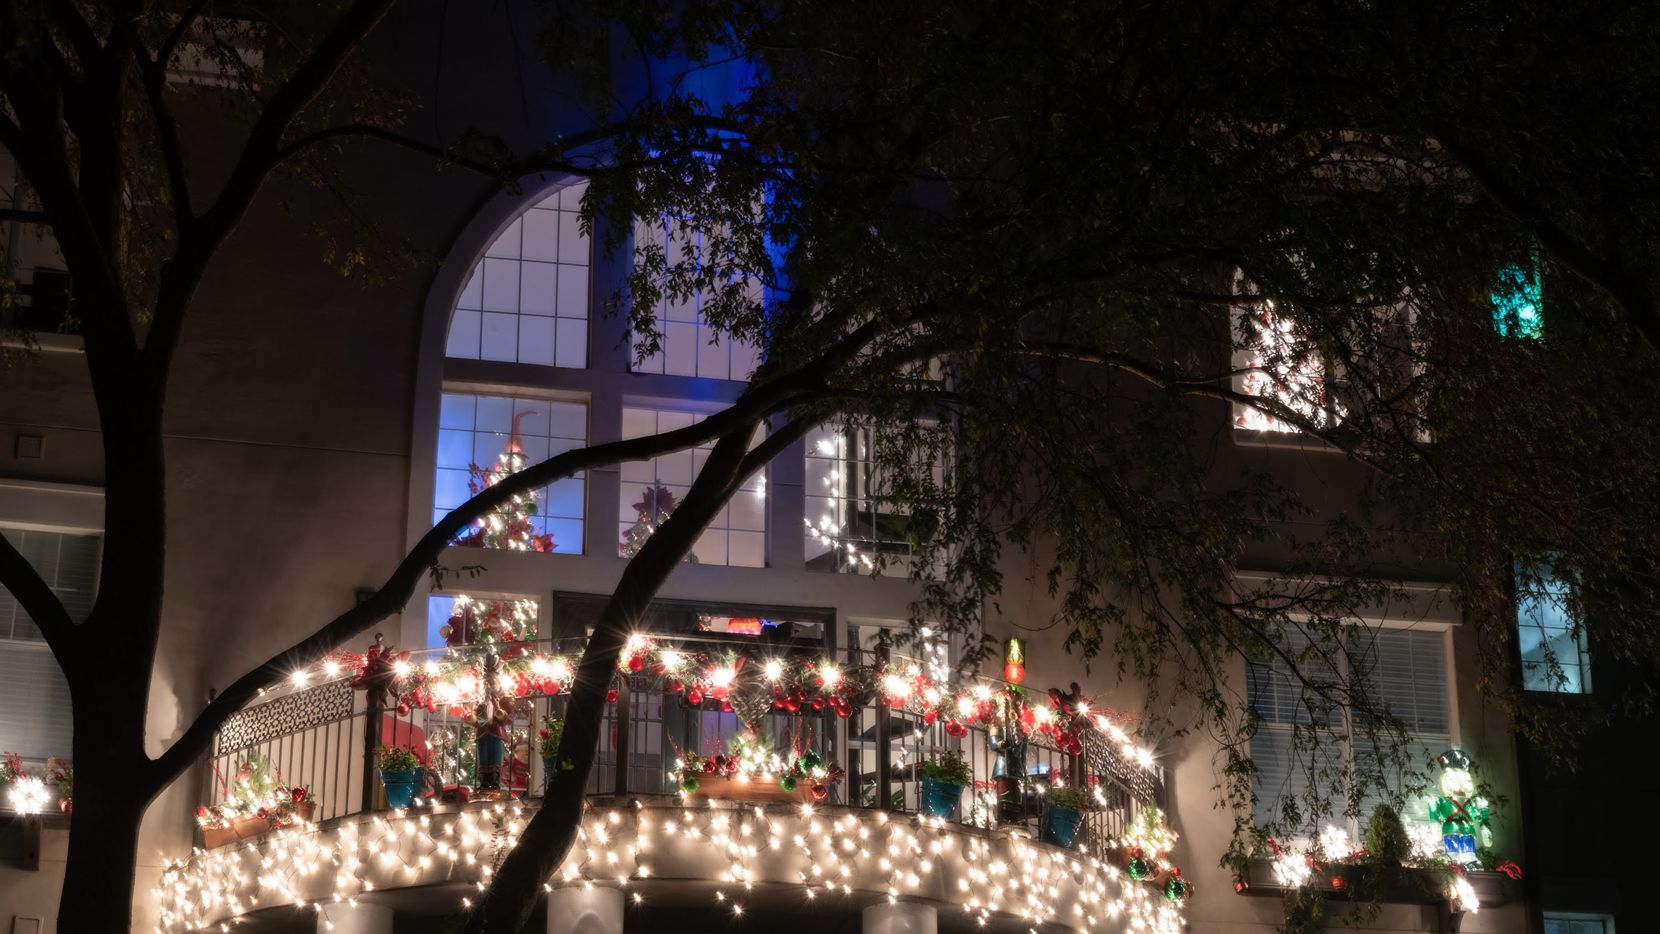 """On weekends, a machine shoots snow from the balcony of Harley Gonzales' Las Colinas penthouse, which he has transformed into the """"Miracle on West Fork"""" as he tries to bring a little holiday cheer to passersby."""